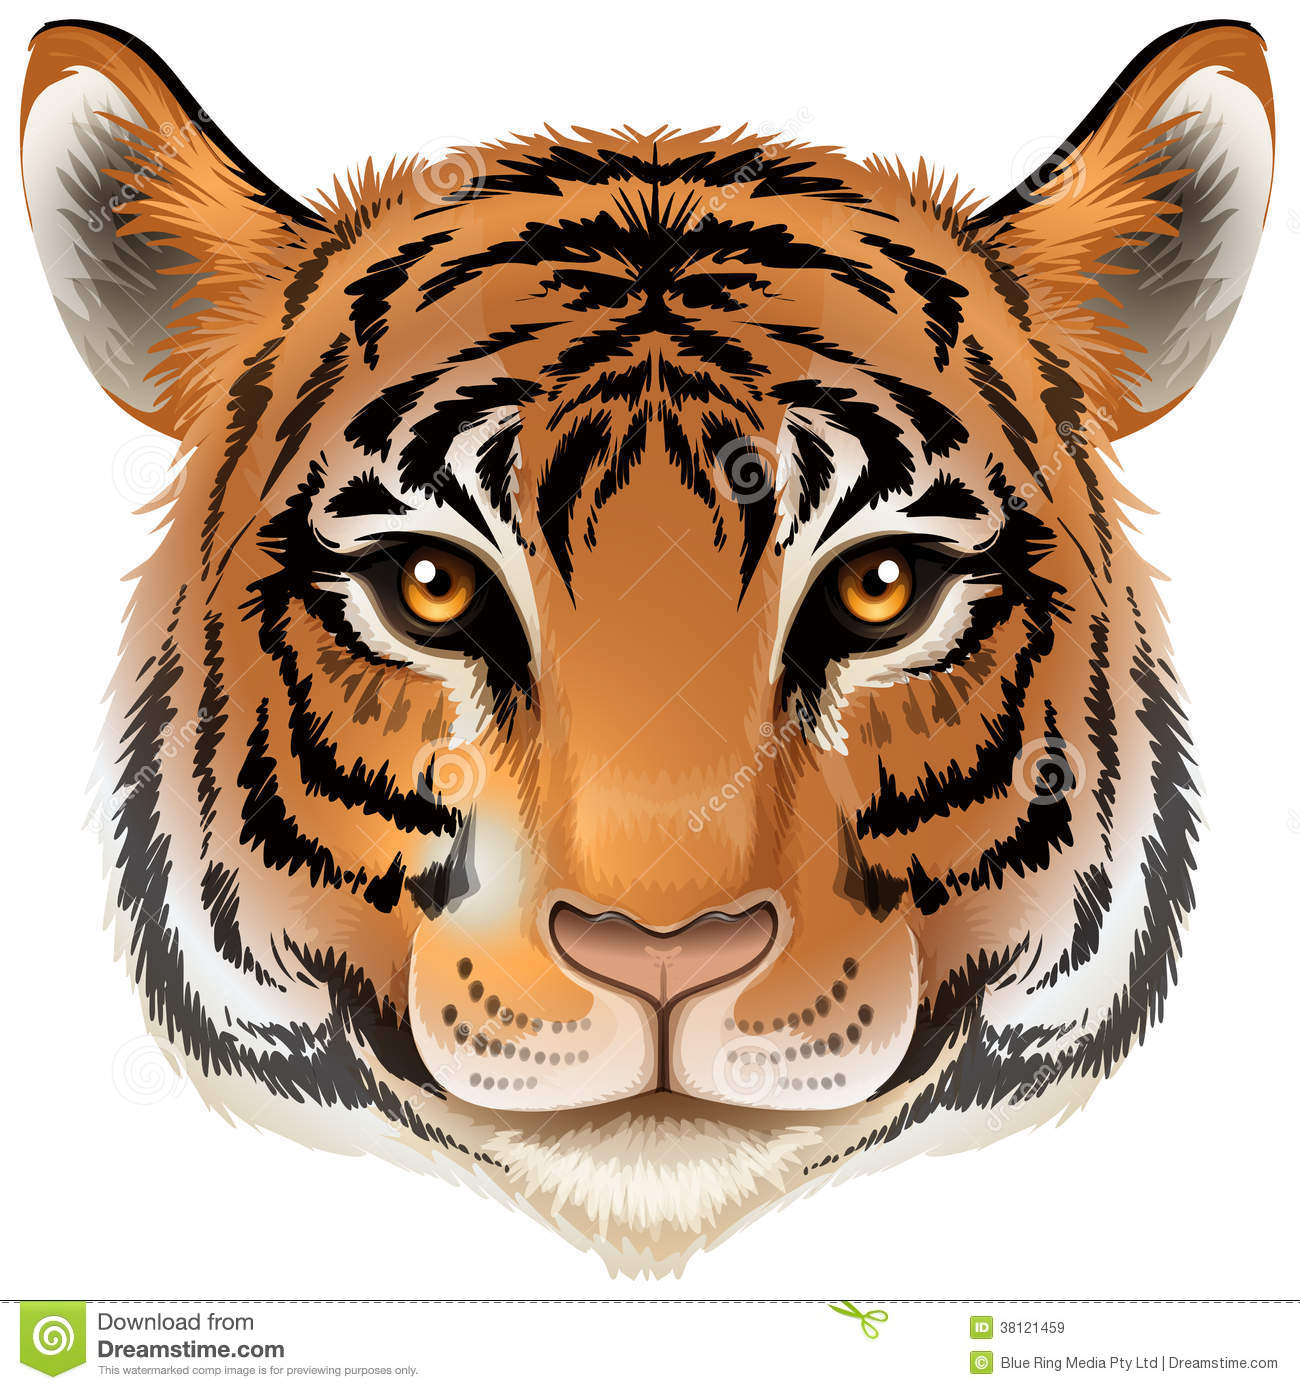 A head of a tiger royalty free stock images image 38121459 - Image tete de tigre ...